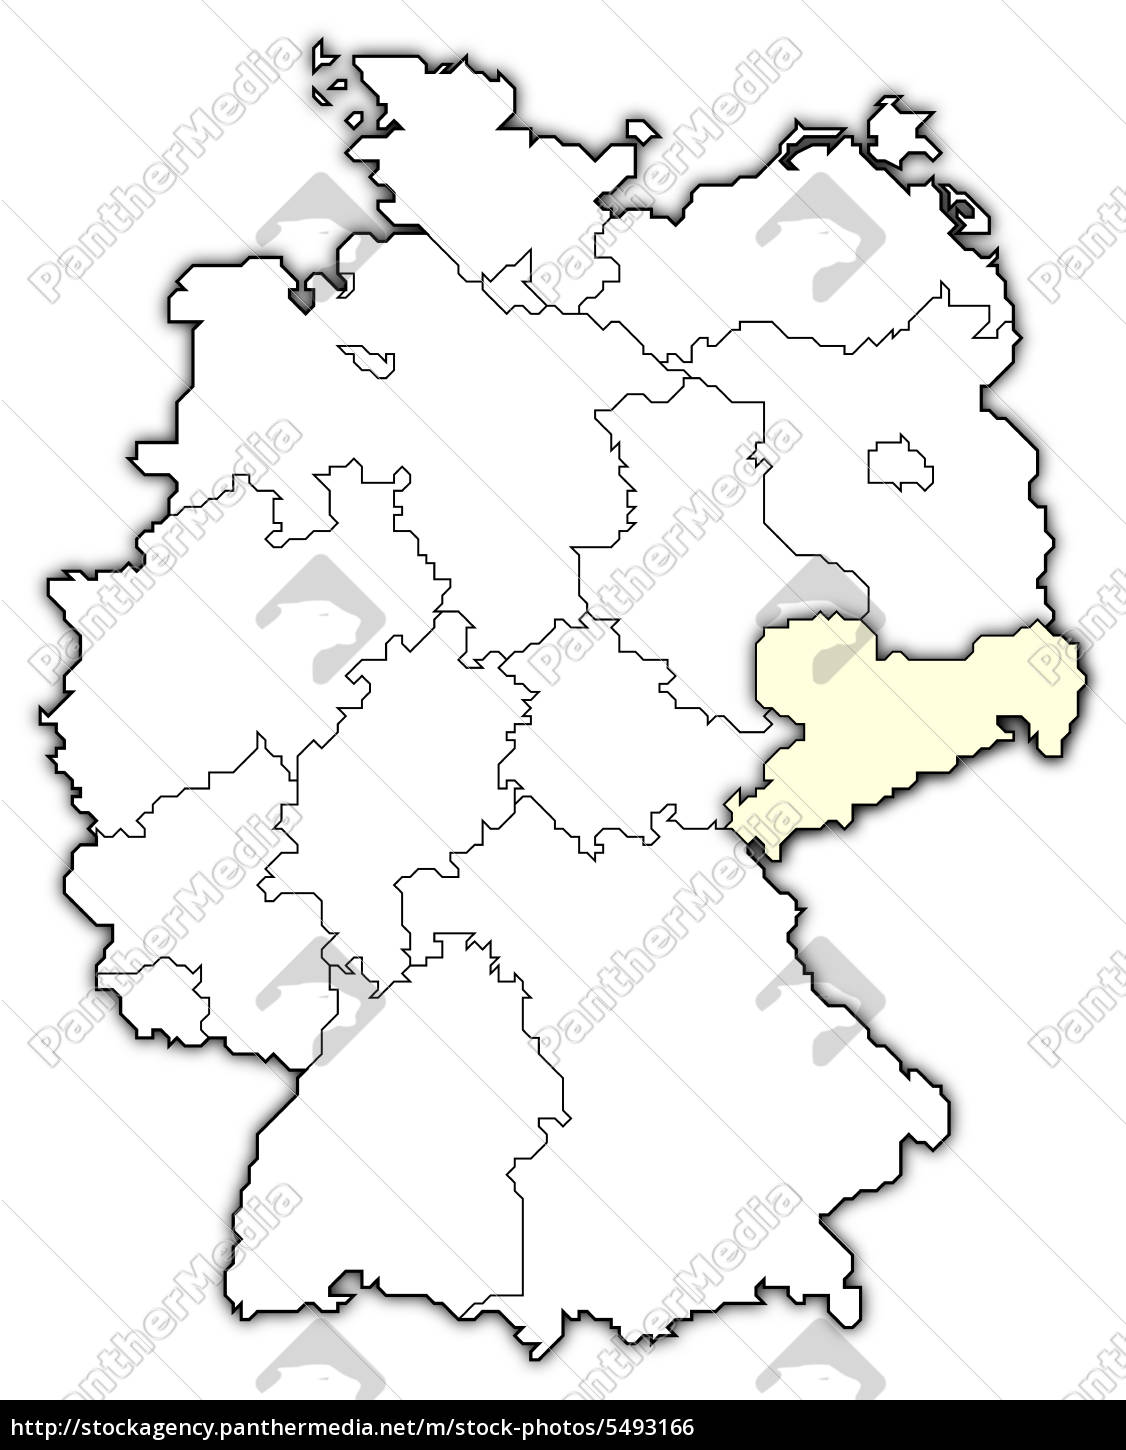 Map of Germany, Saxony highlighted - Stock Photo - #5493166 ...